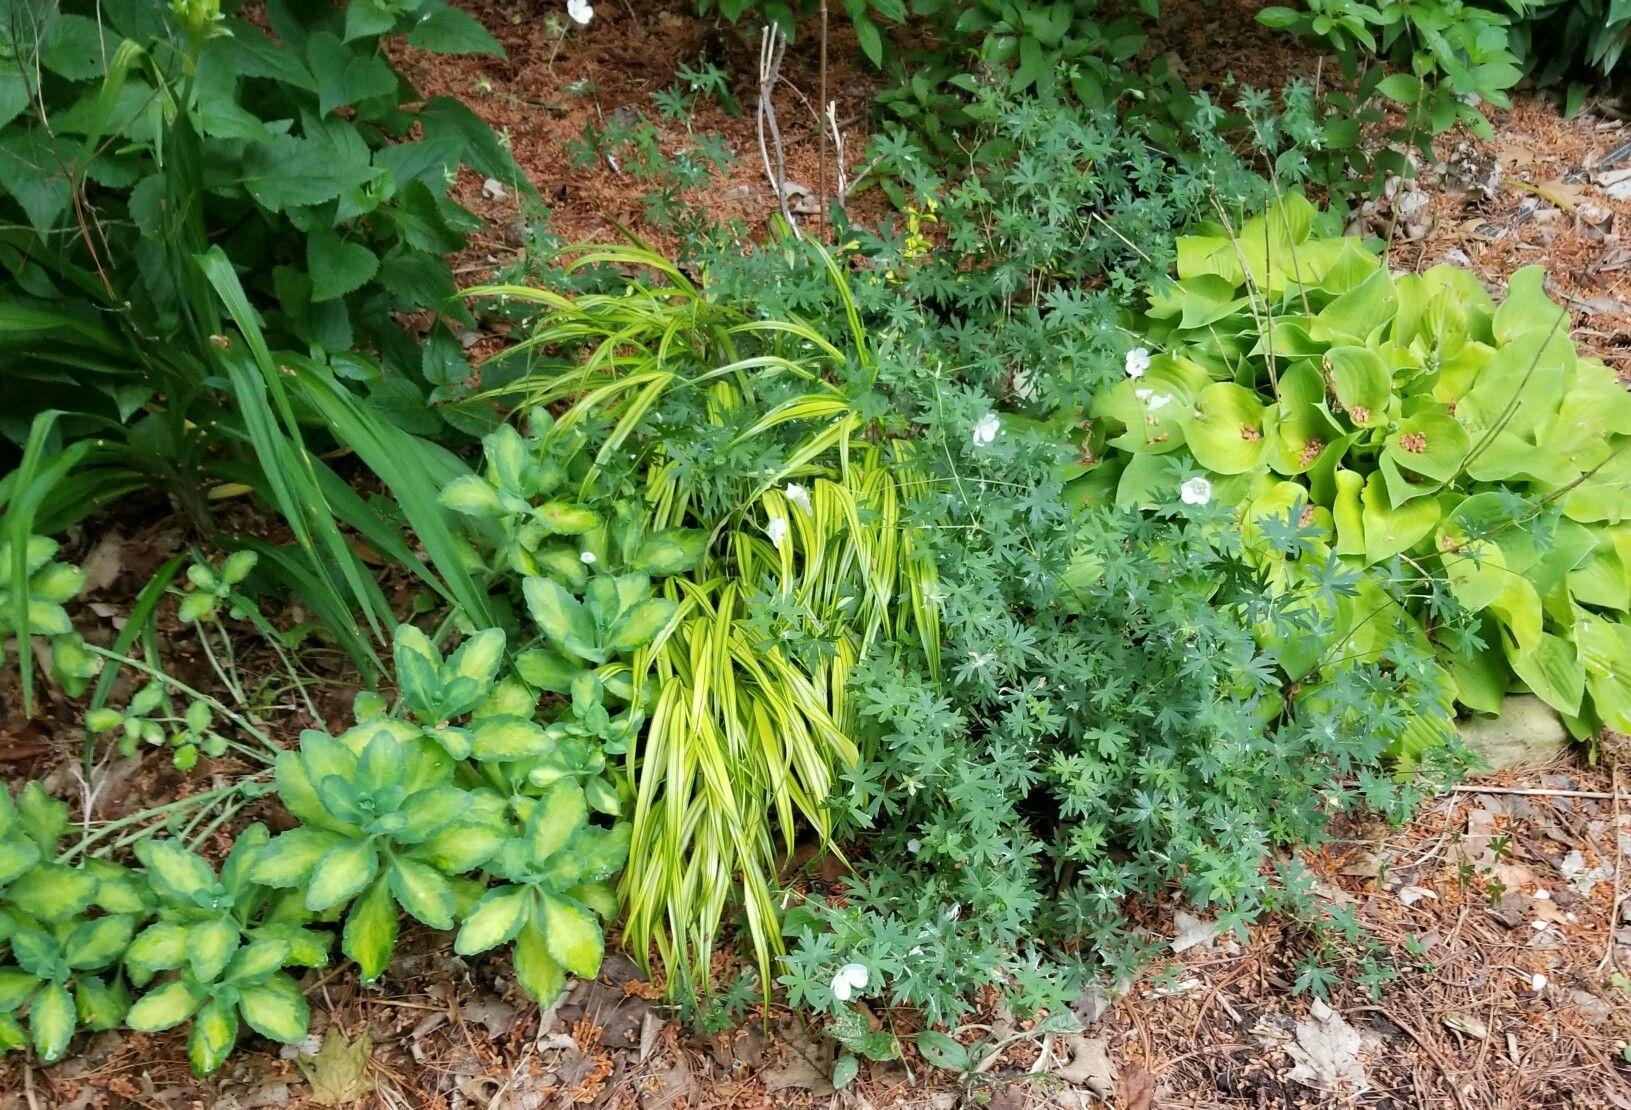 Pin by Priscilla S. on Your ZONE 5 Shade Border | Plants ...